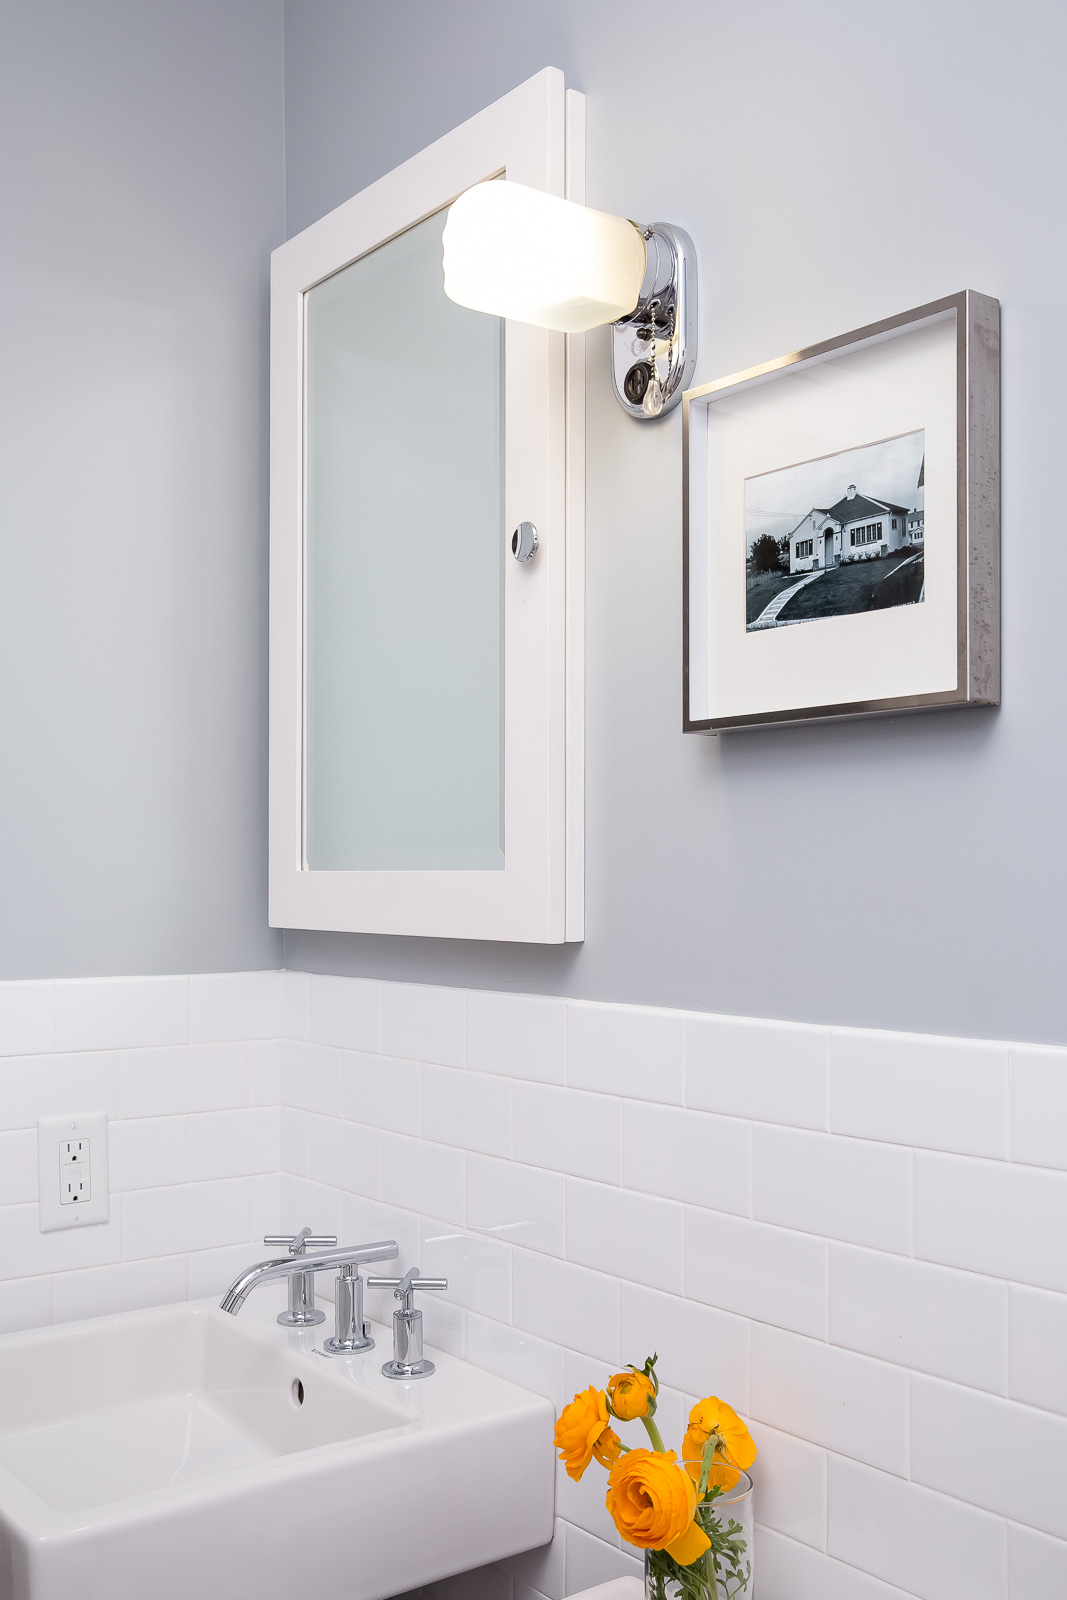 AFTER - Small bathroom remodel makeover w/ cement tile floor and vintage style #bathroommakeover #subwaytile #vintagestylebathroom